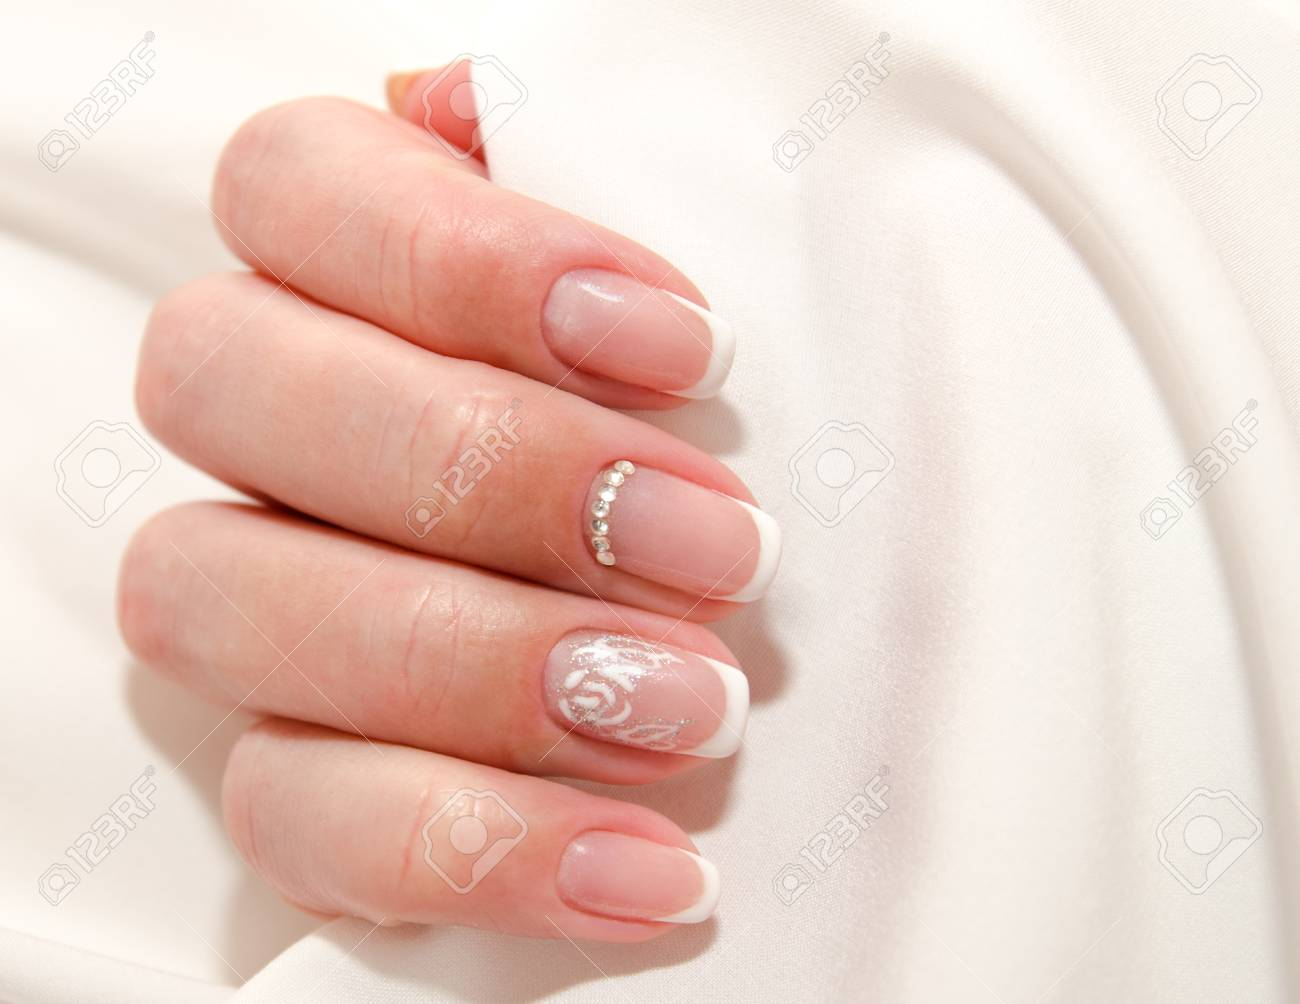 Woman S Nails With Beautiful French Manicure Fashion Design With Stock Photo Picture And Royalty Free Image Image 109703081